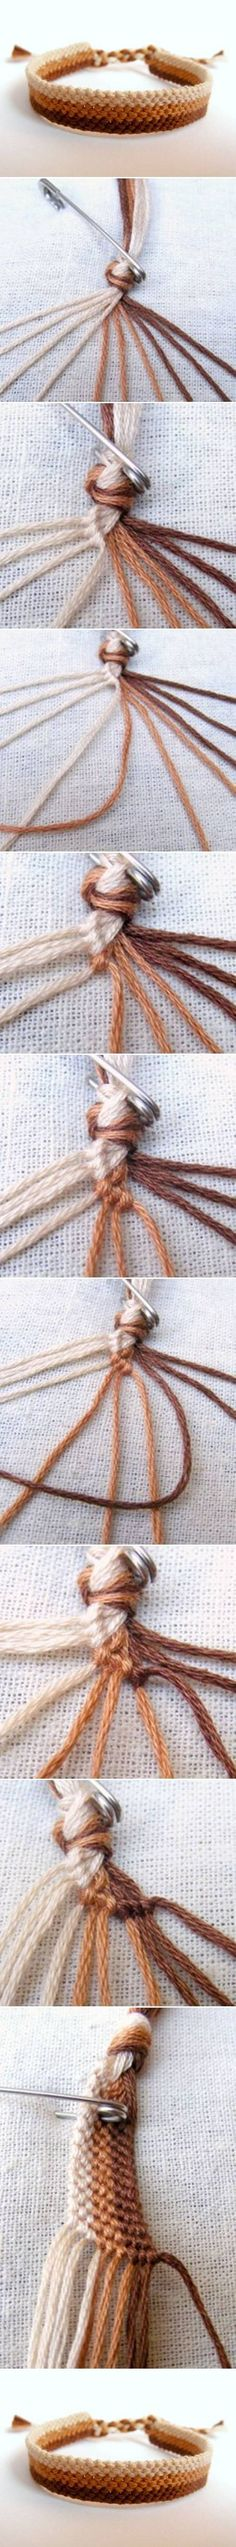 How To Make Easy Weave Bracelet step by step DIY tutorial instructions / How To Instructions                                                                                                                                                                                 More